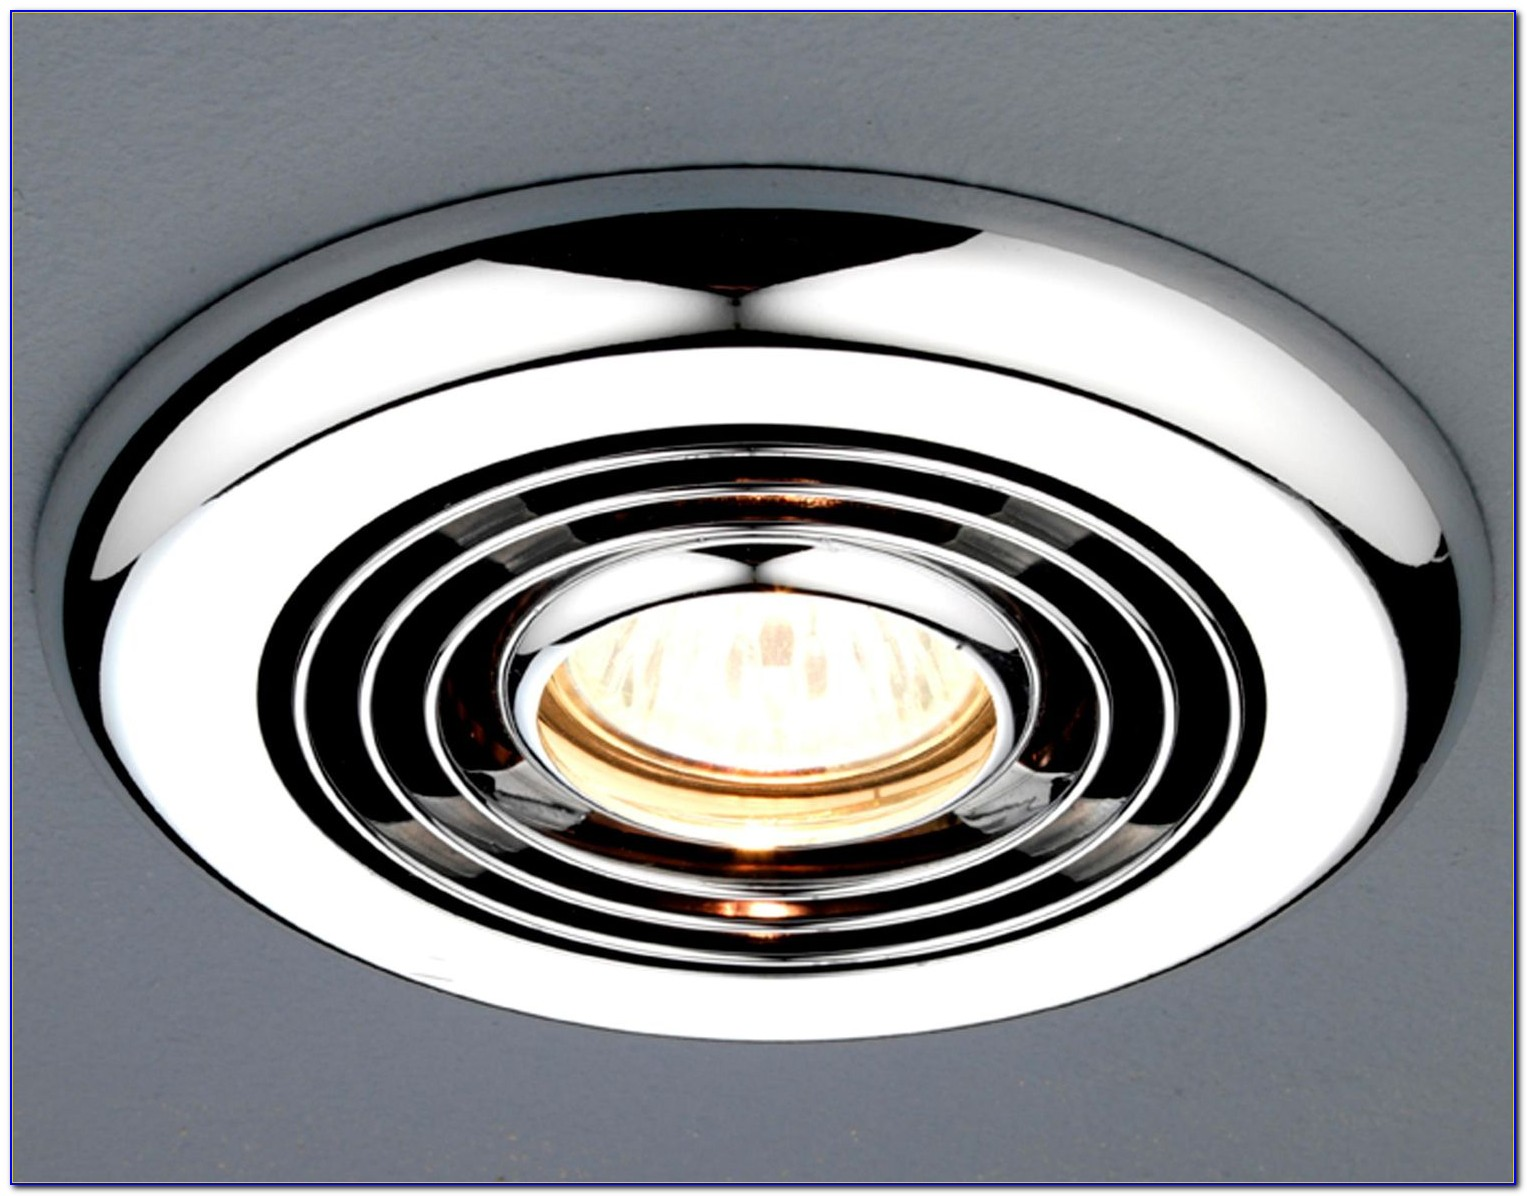 Ceiling Mounted Toilet Extractor Fans